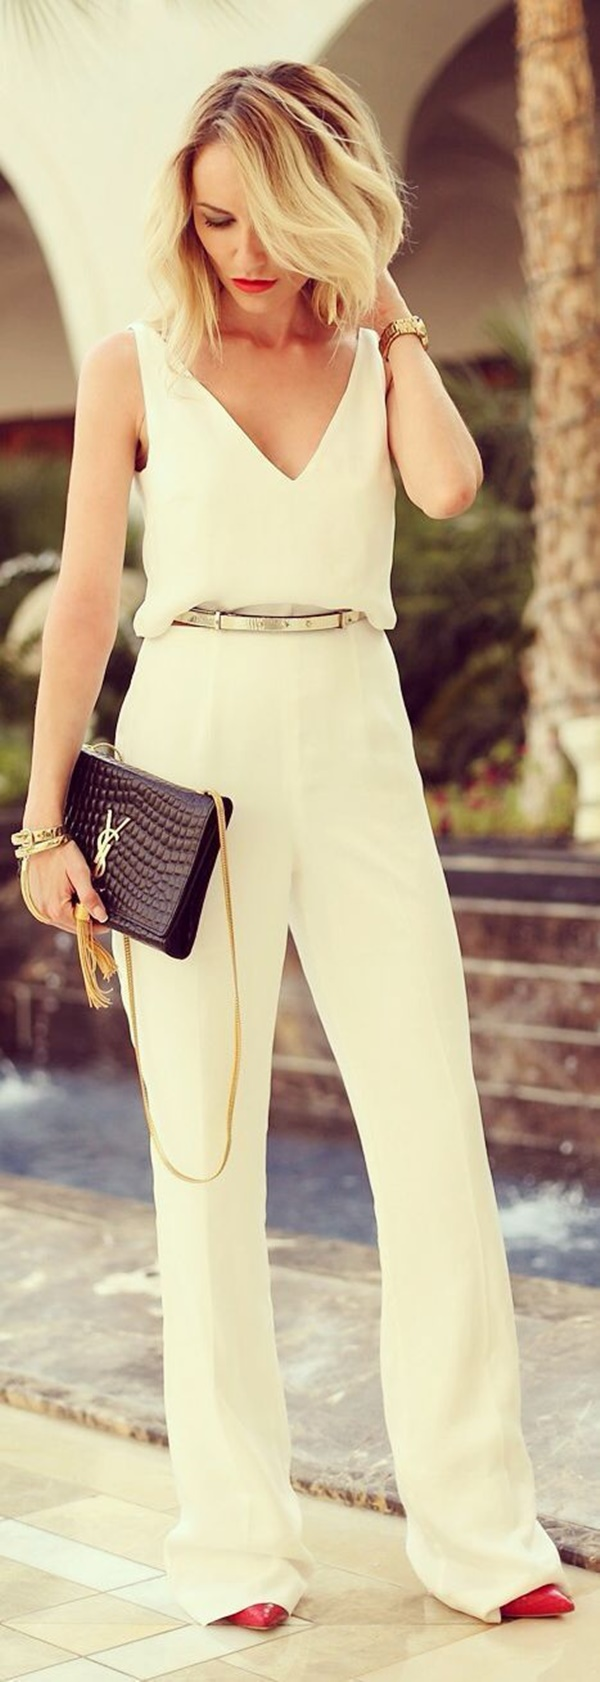 Hot Jumpsuit outfit ideas for Girls16.1